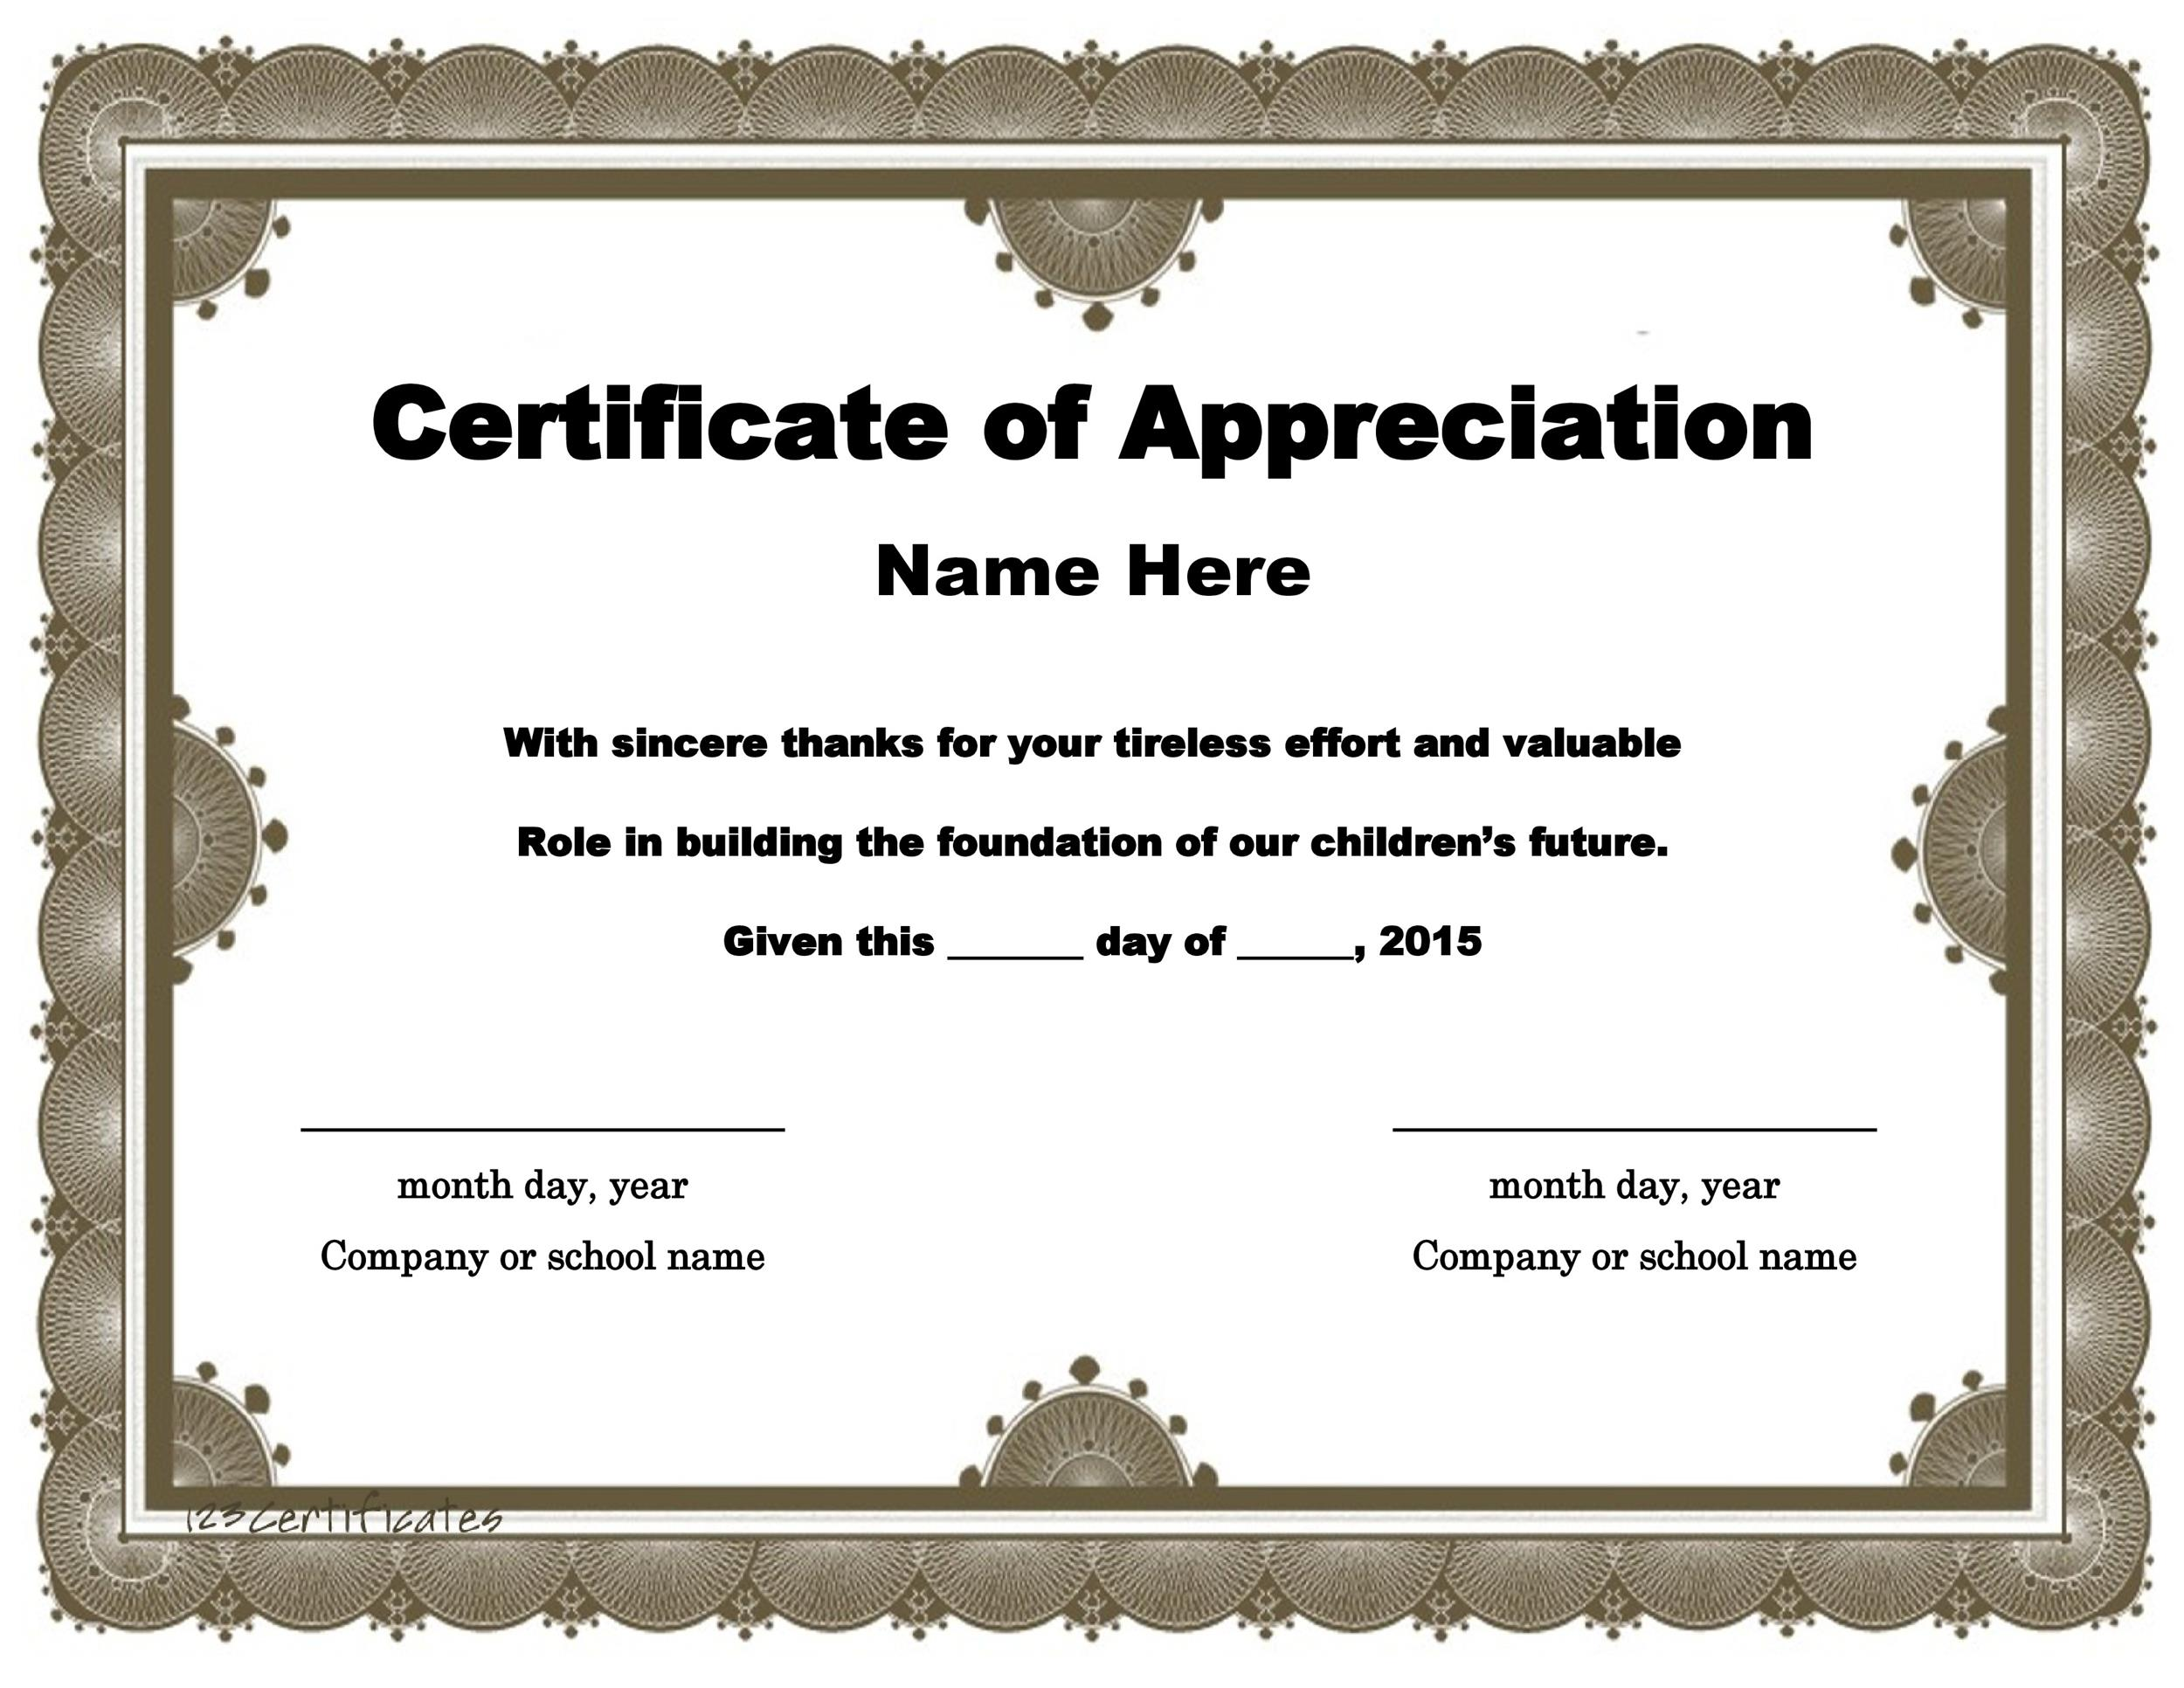 Printable Certificate Of Appreciation 03  Certificates Of Appreciation Templates For Word